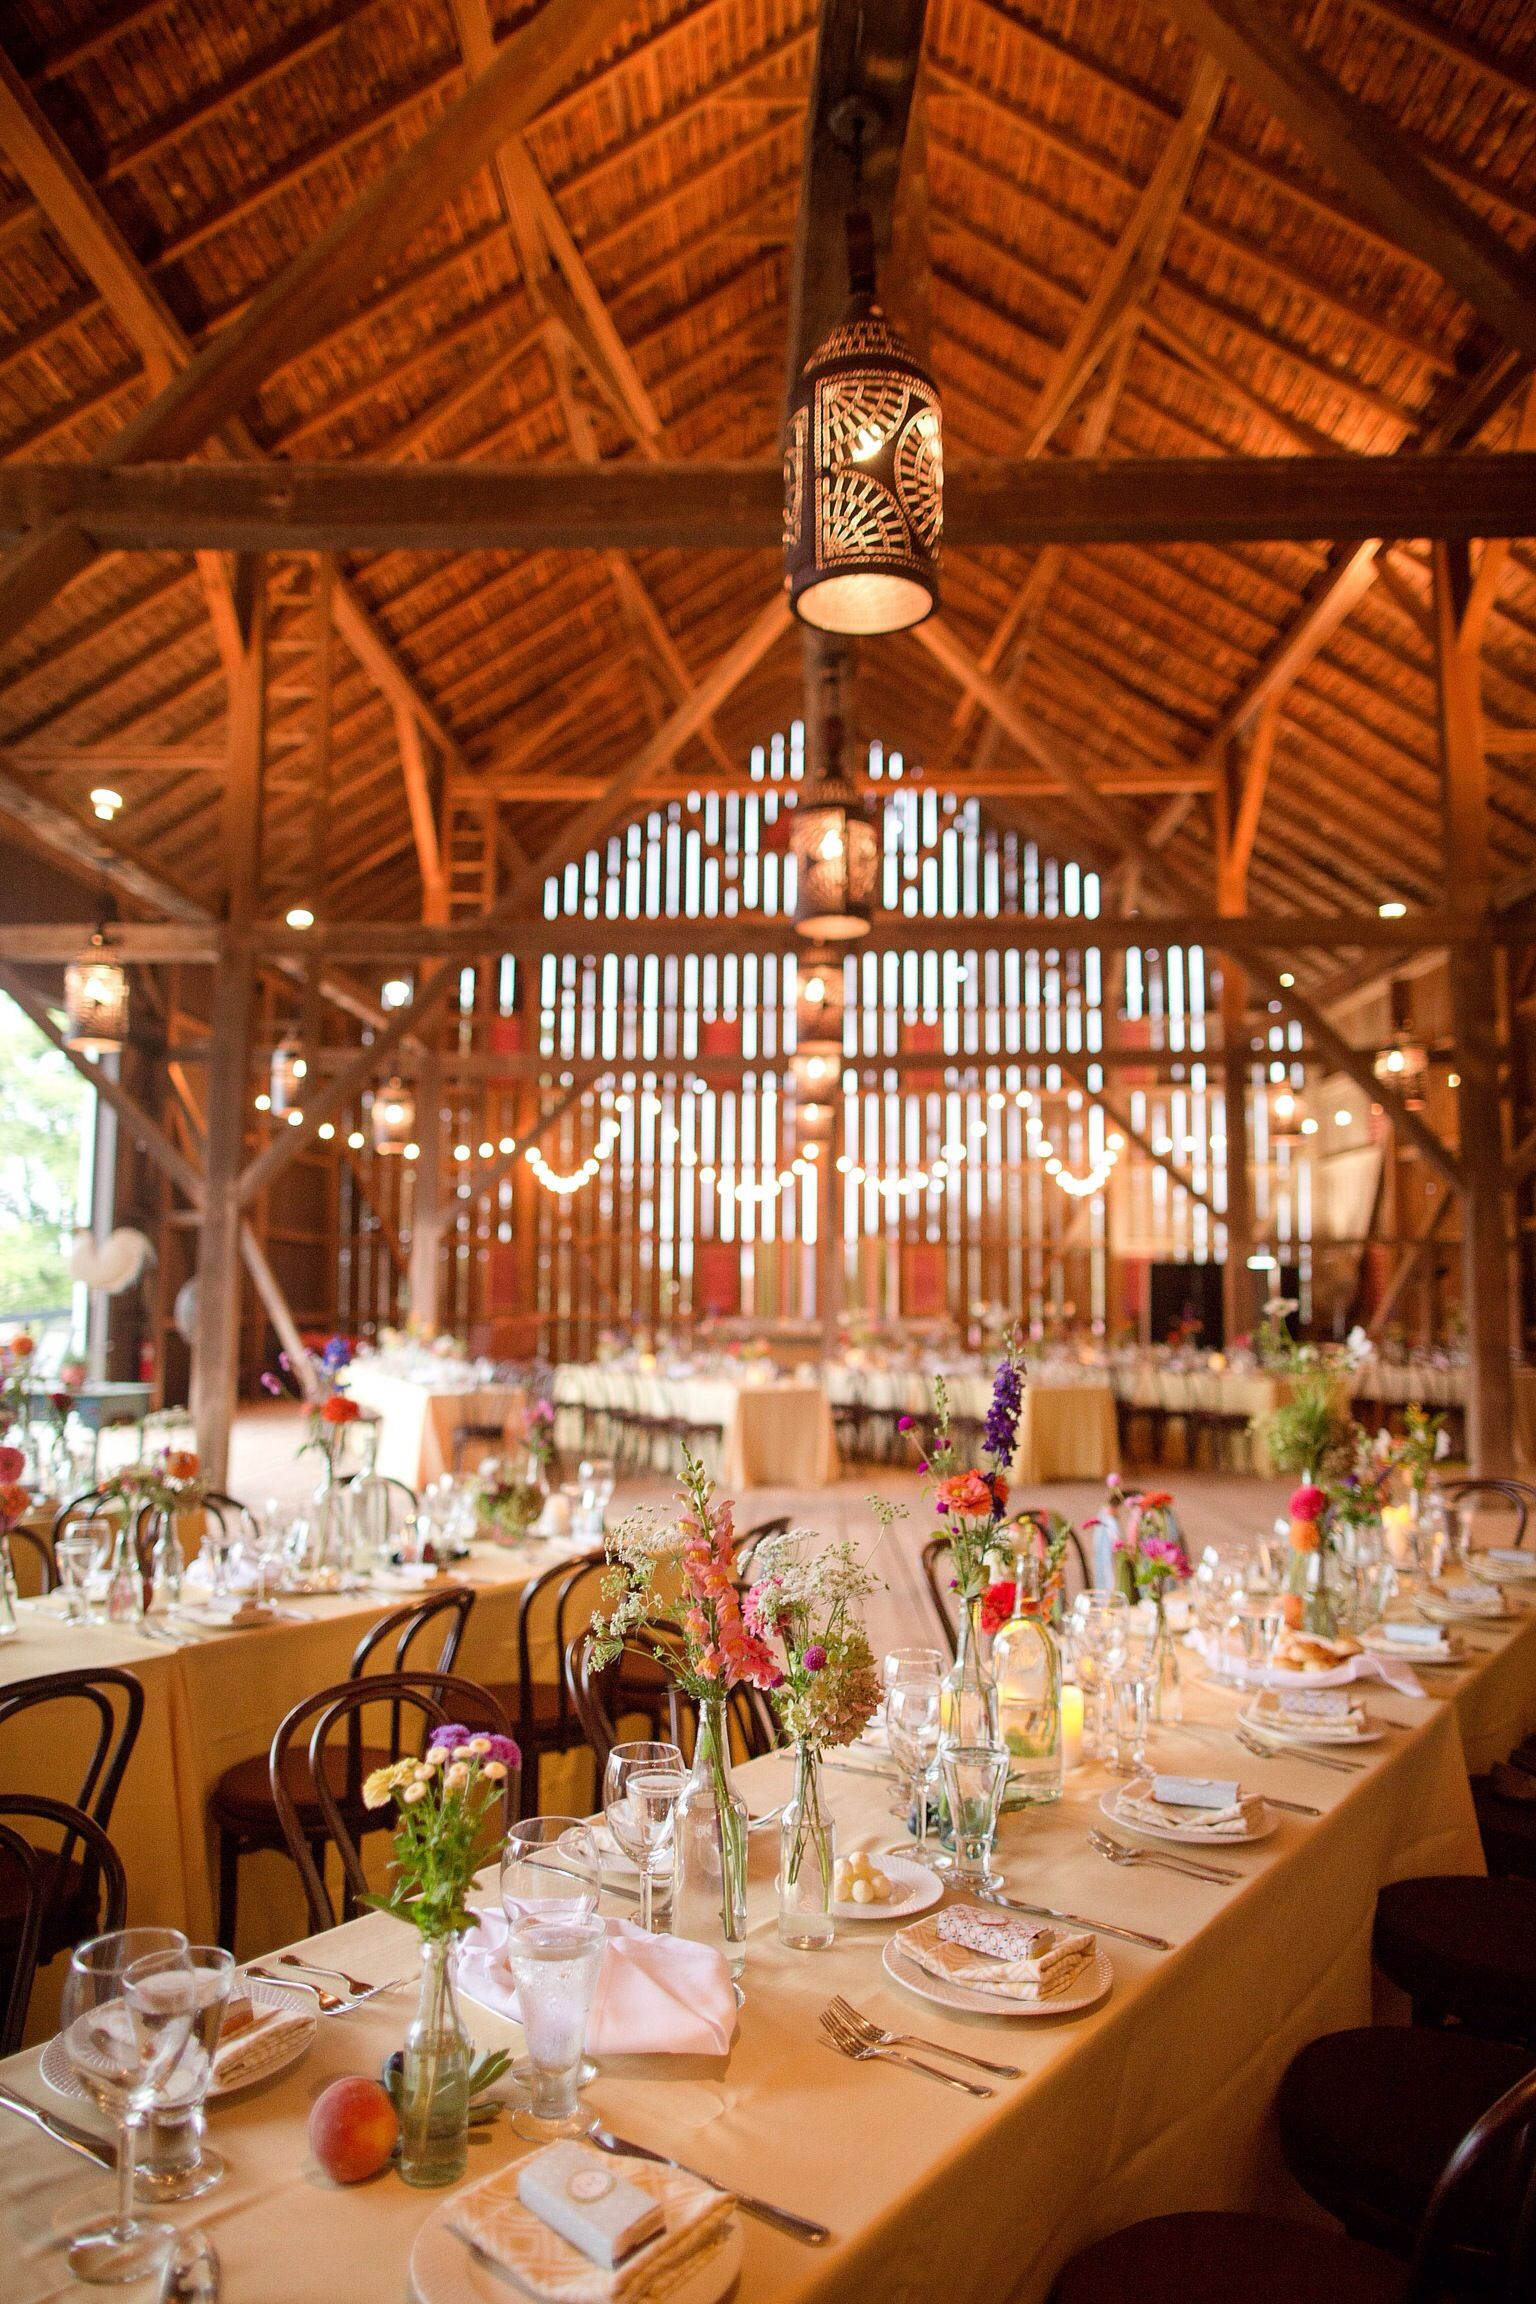 Riverside On The Potomac Offers Event Venues For Weddings And Special Events Along River In Loudoun County Virginia